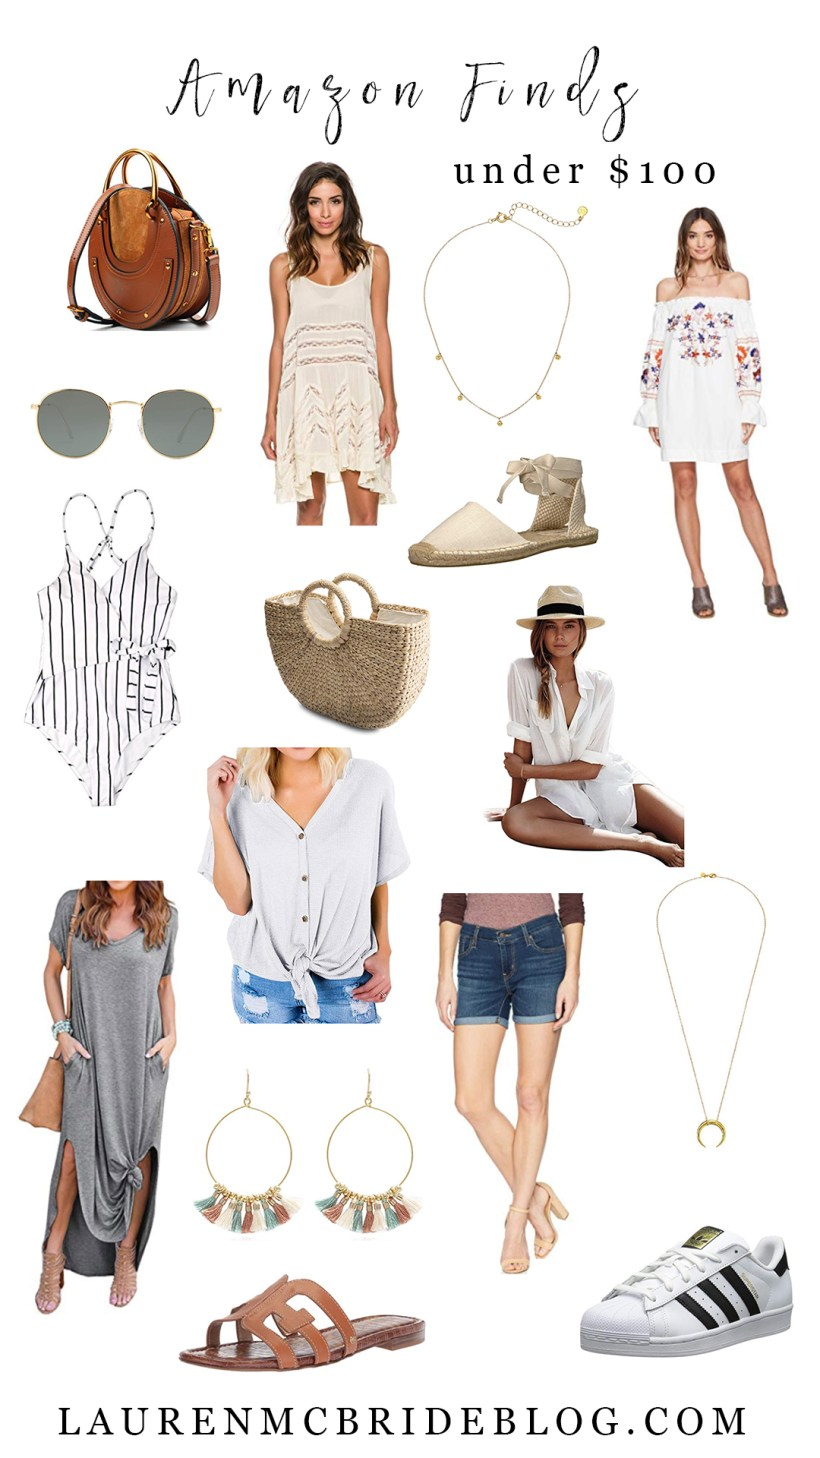 922d11acd ... Connecticut life and style blogger Lauren McBride shares her July Amazon  Finds under $100 that include